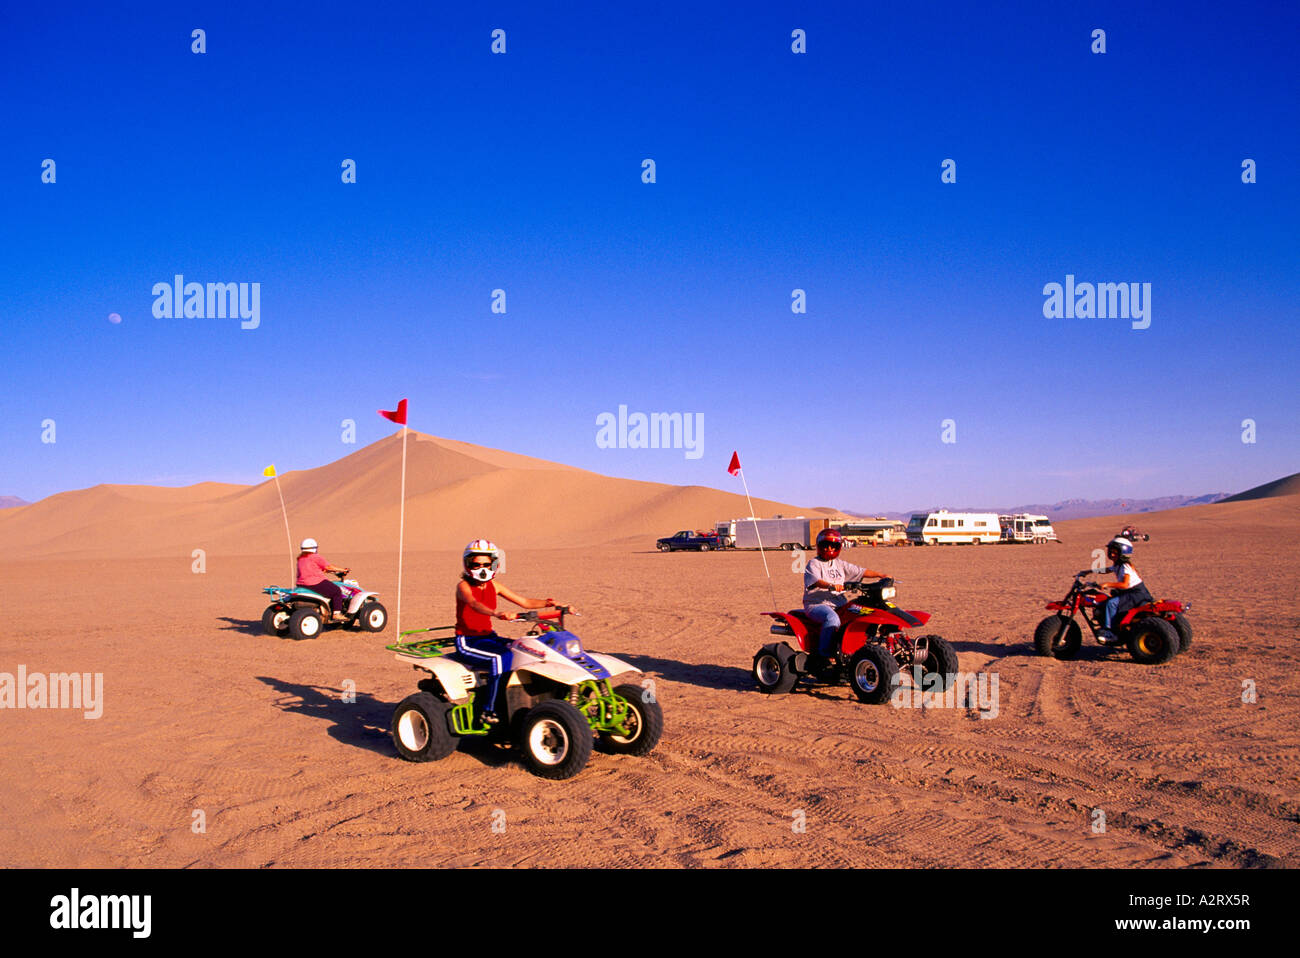 All-Terrain Vehicles at the Dumont Sand Dunes near Death Valley National Park California USA - Stock Image